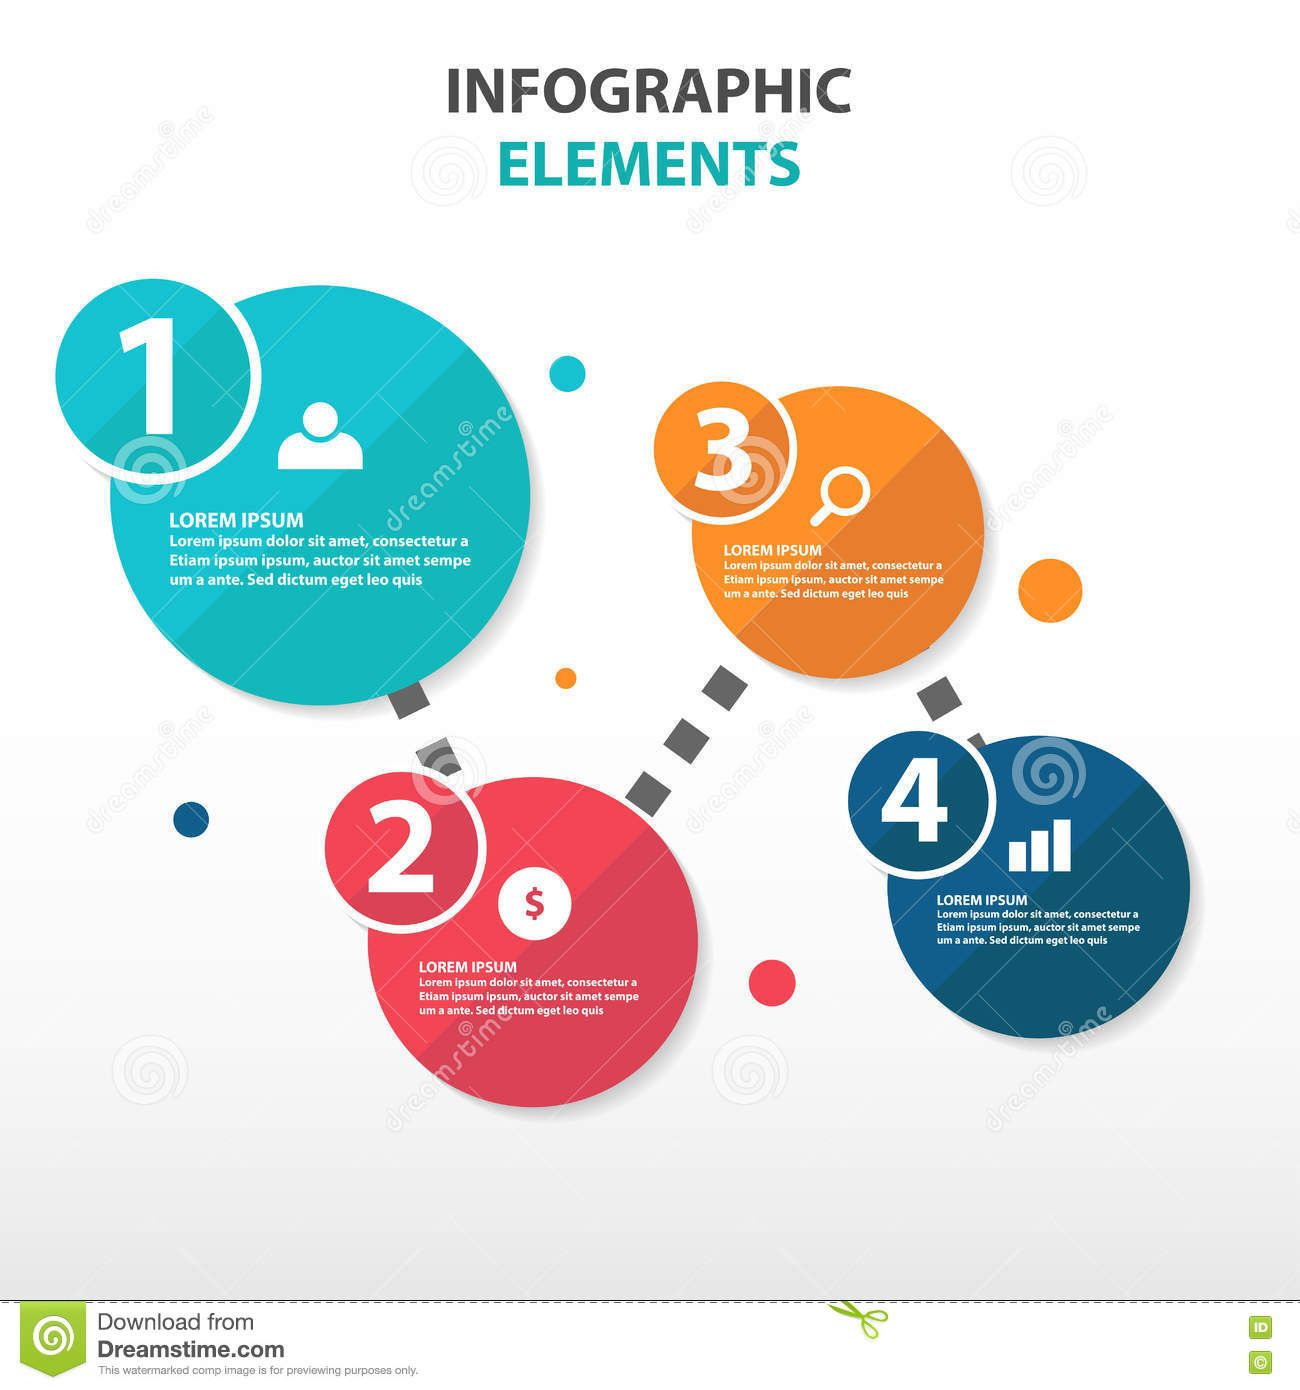 process flow infographics - yahoo image search results | aqua365, Presentation templates